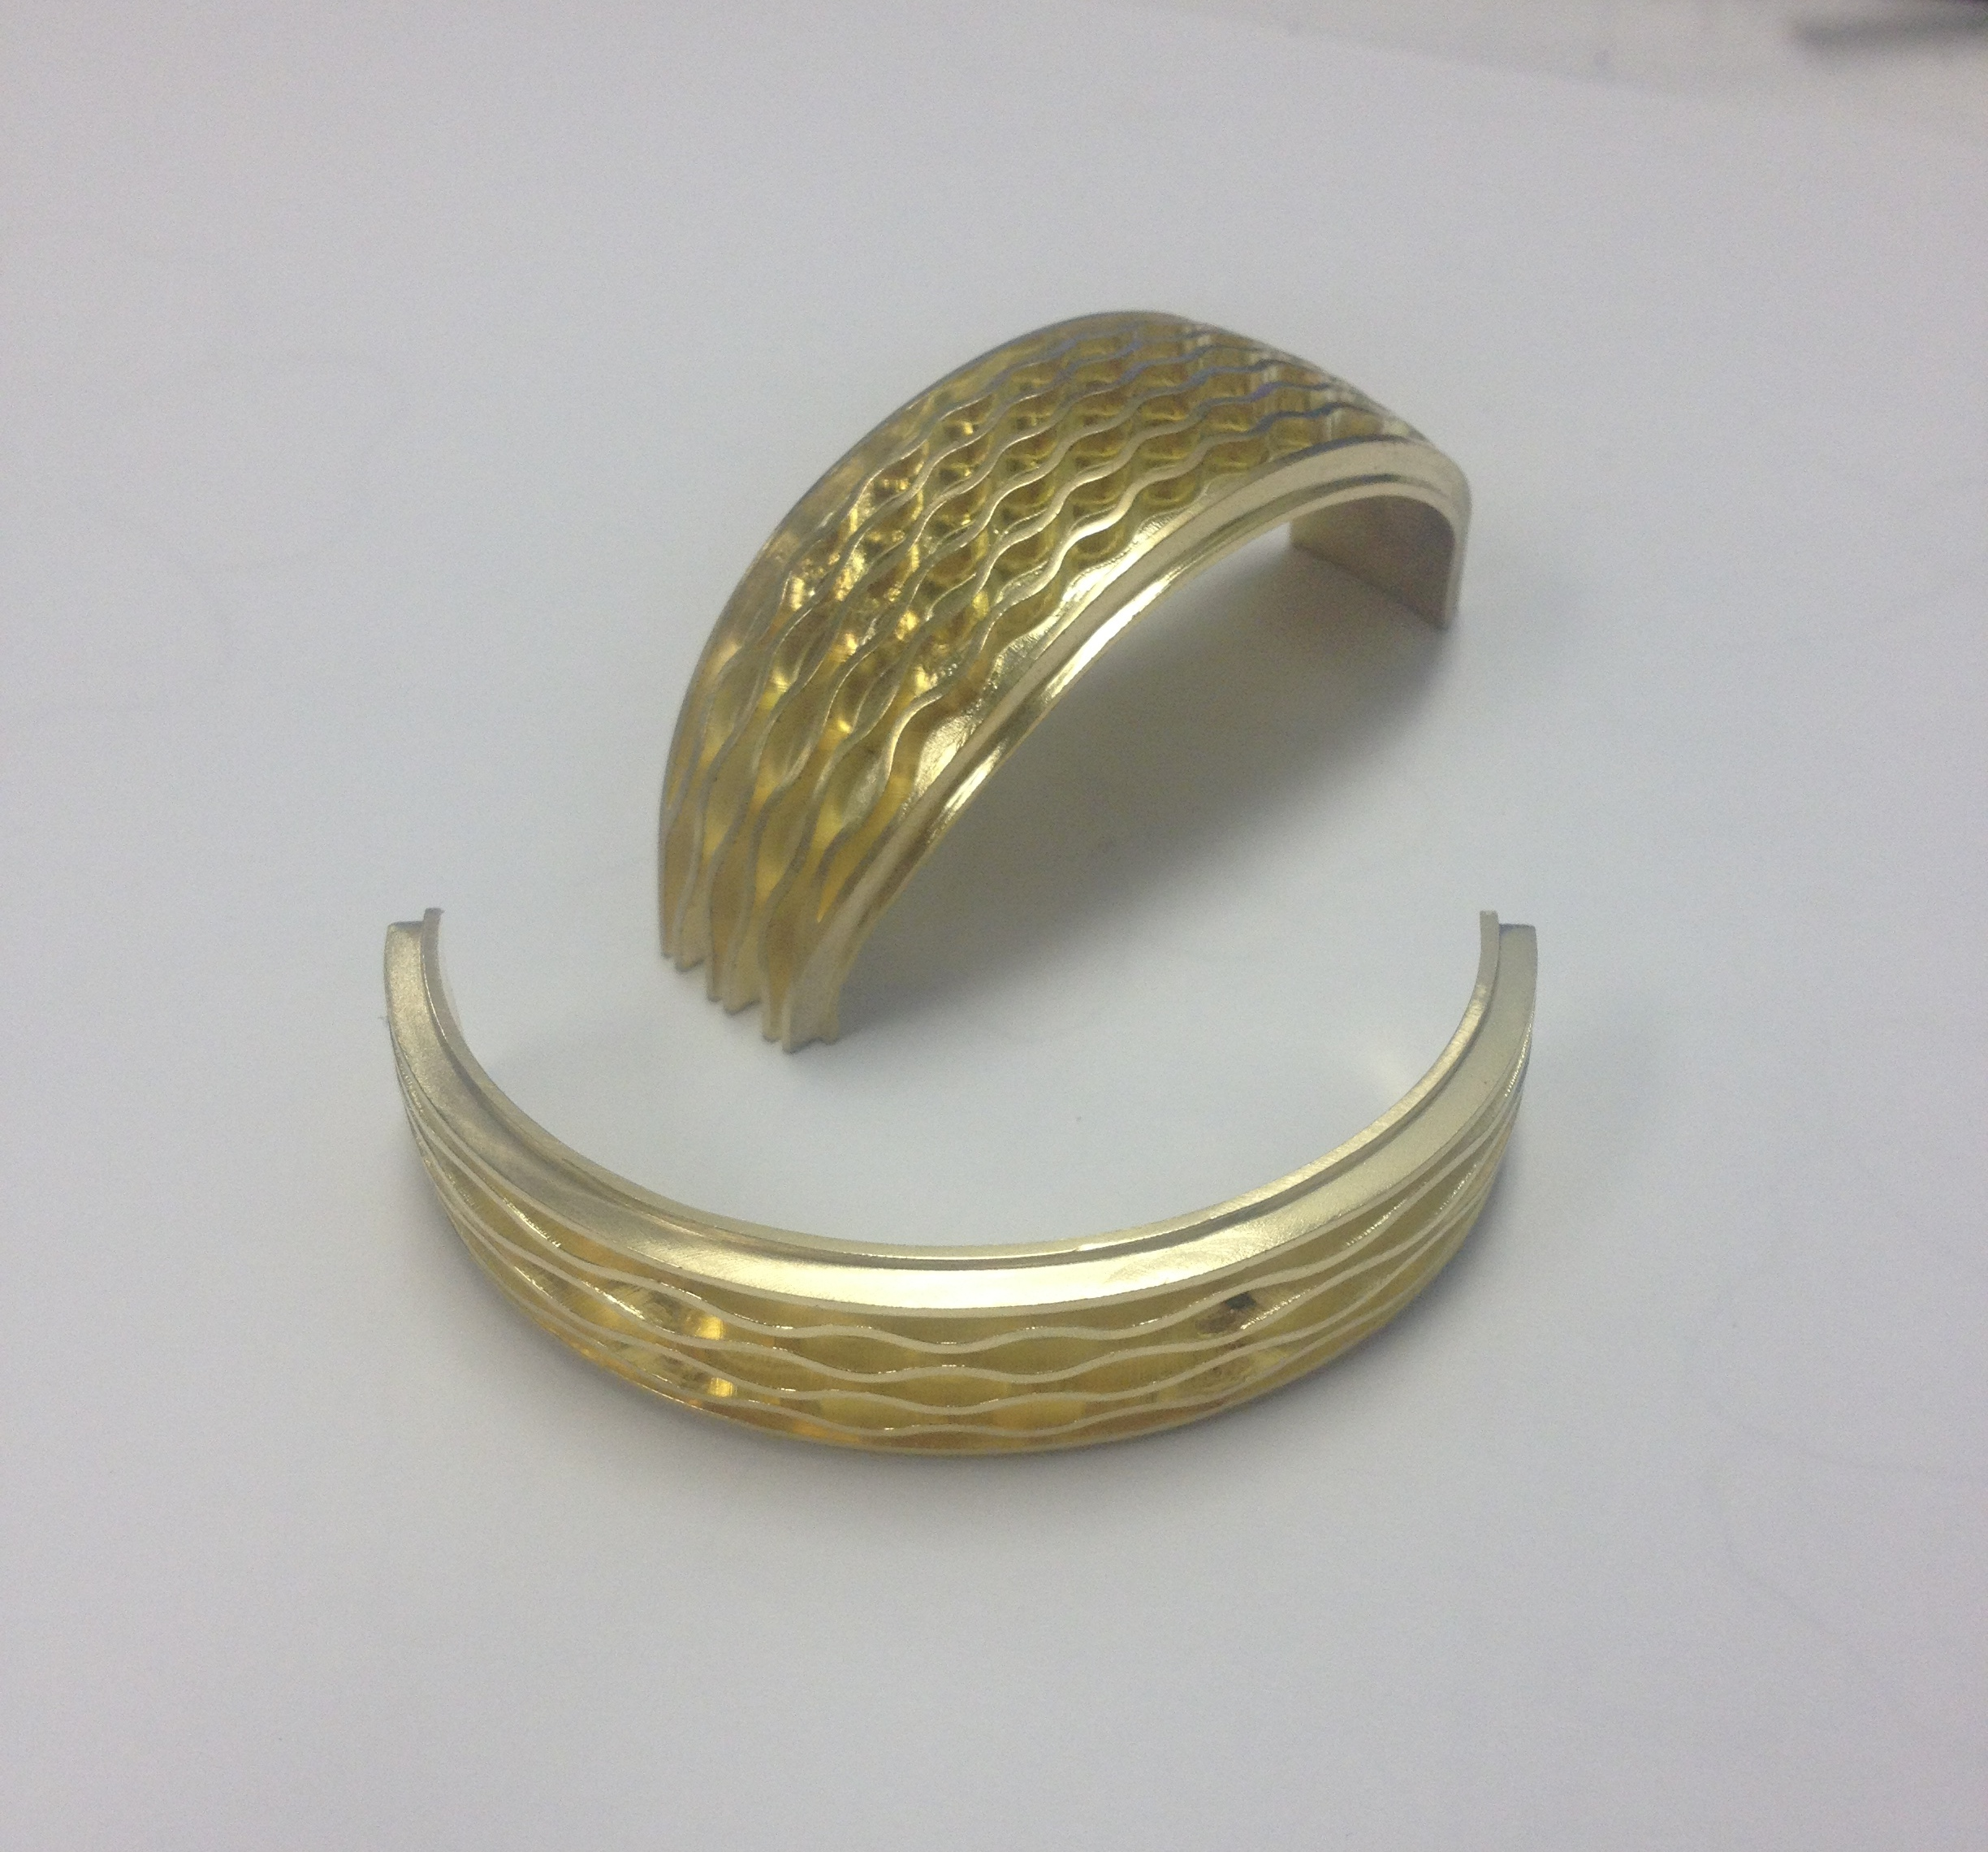 Fabrication in 18k Yellow Gold.